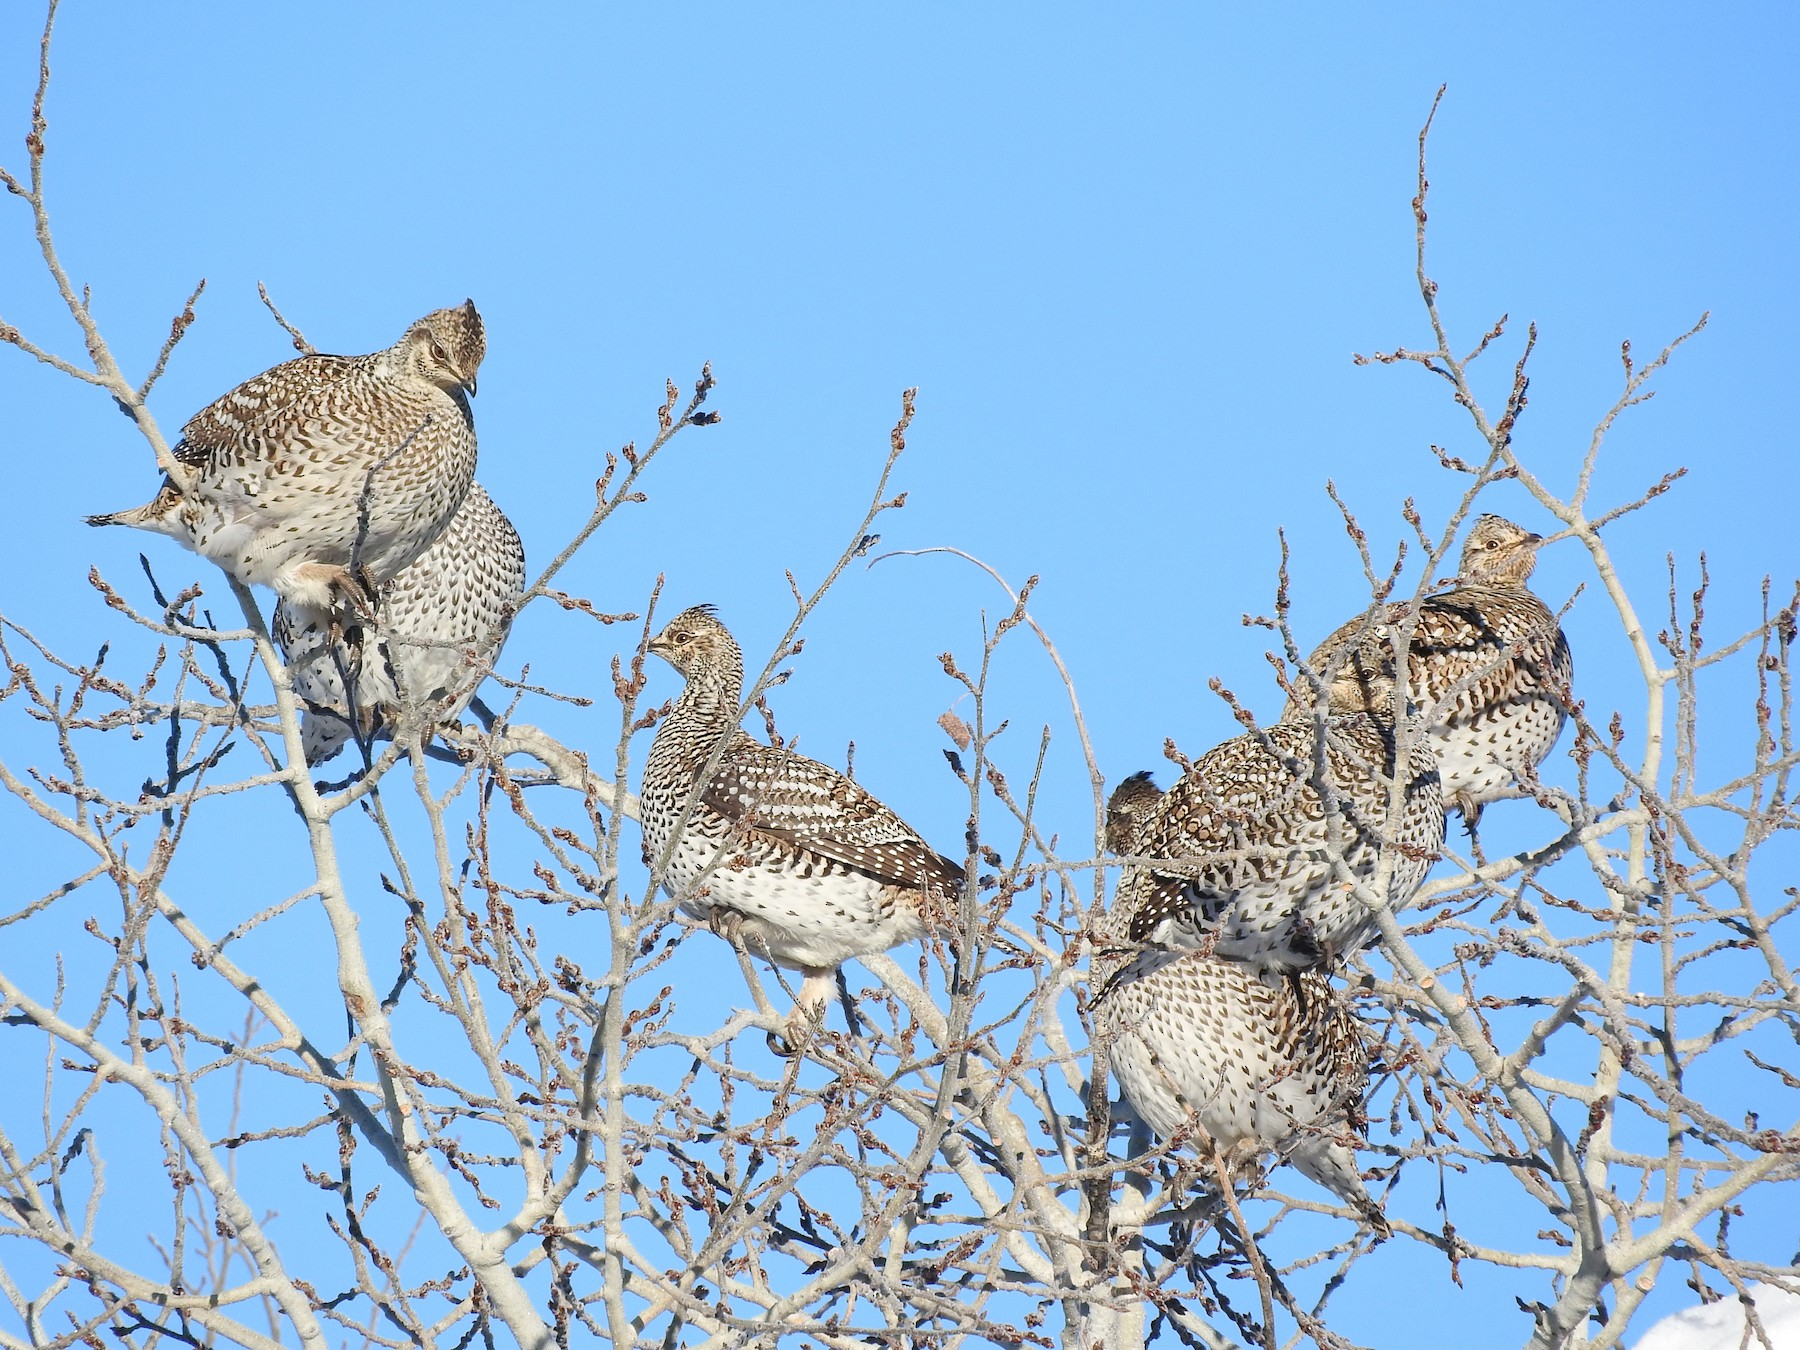 Sharp-tailed Grouse - Tresa Moulton